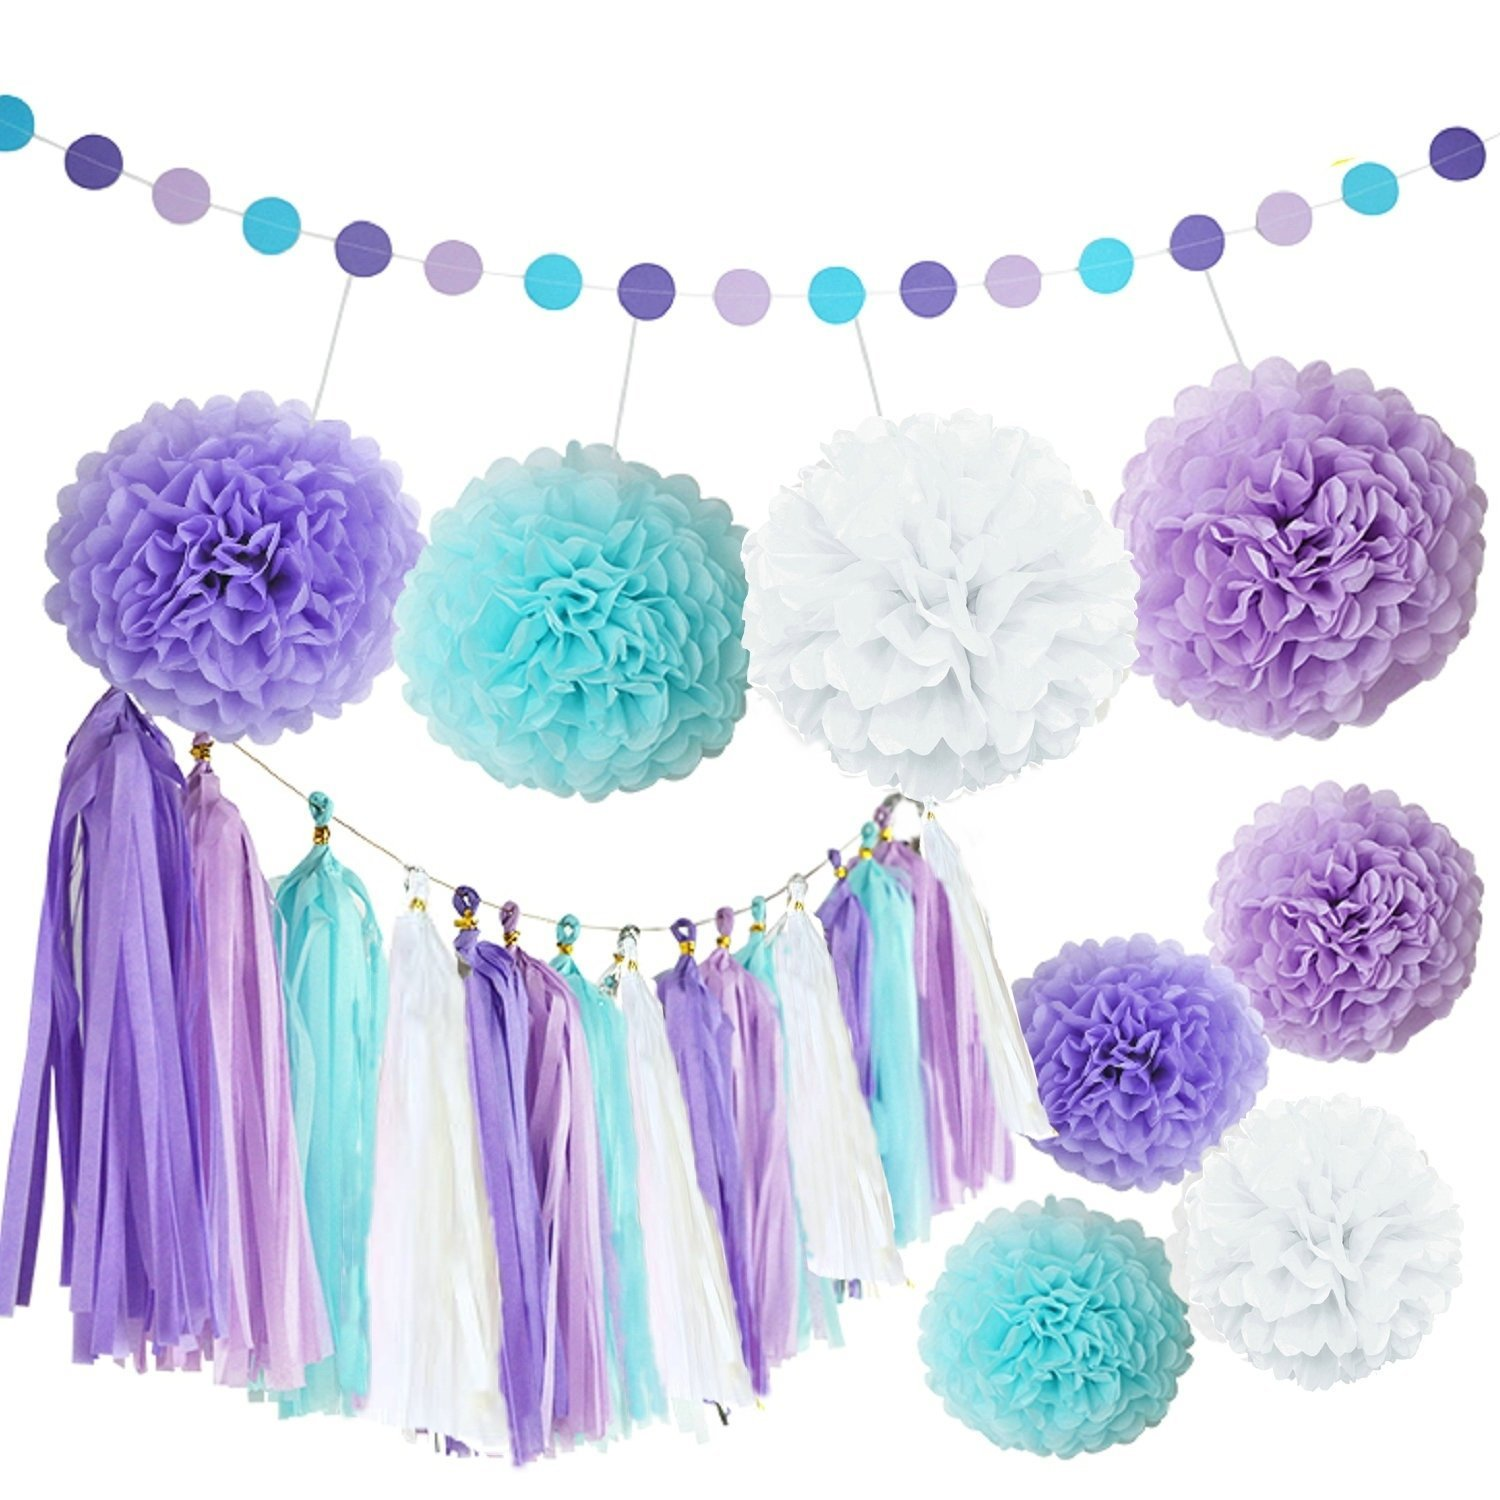 Bridal Shower Decor Purple Baby Shower Decoration Fascola 12 pcs White Purple Gold Tissue Paper Pom Pom Paper Lanterns Circle Paper Garland Mixed Package for Purple Themed Party Wedding Paper Garland